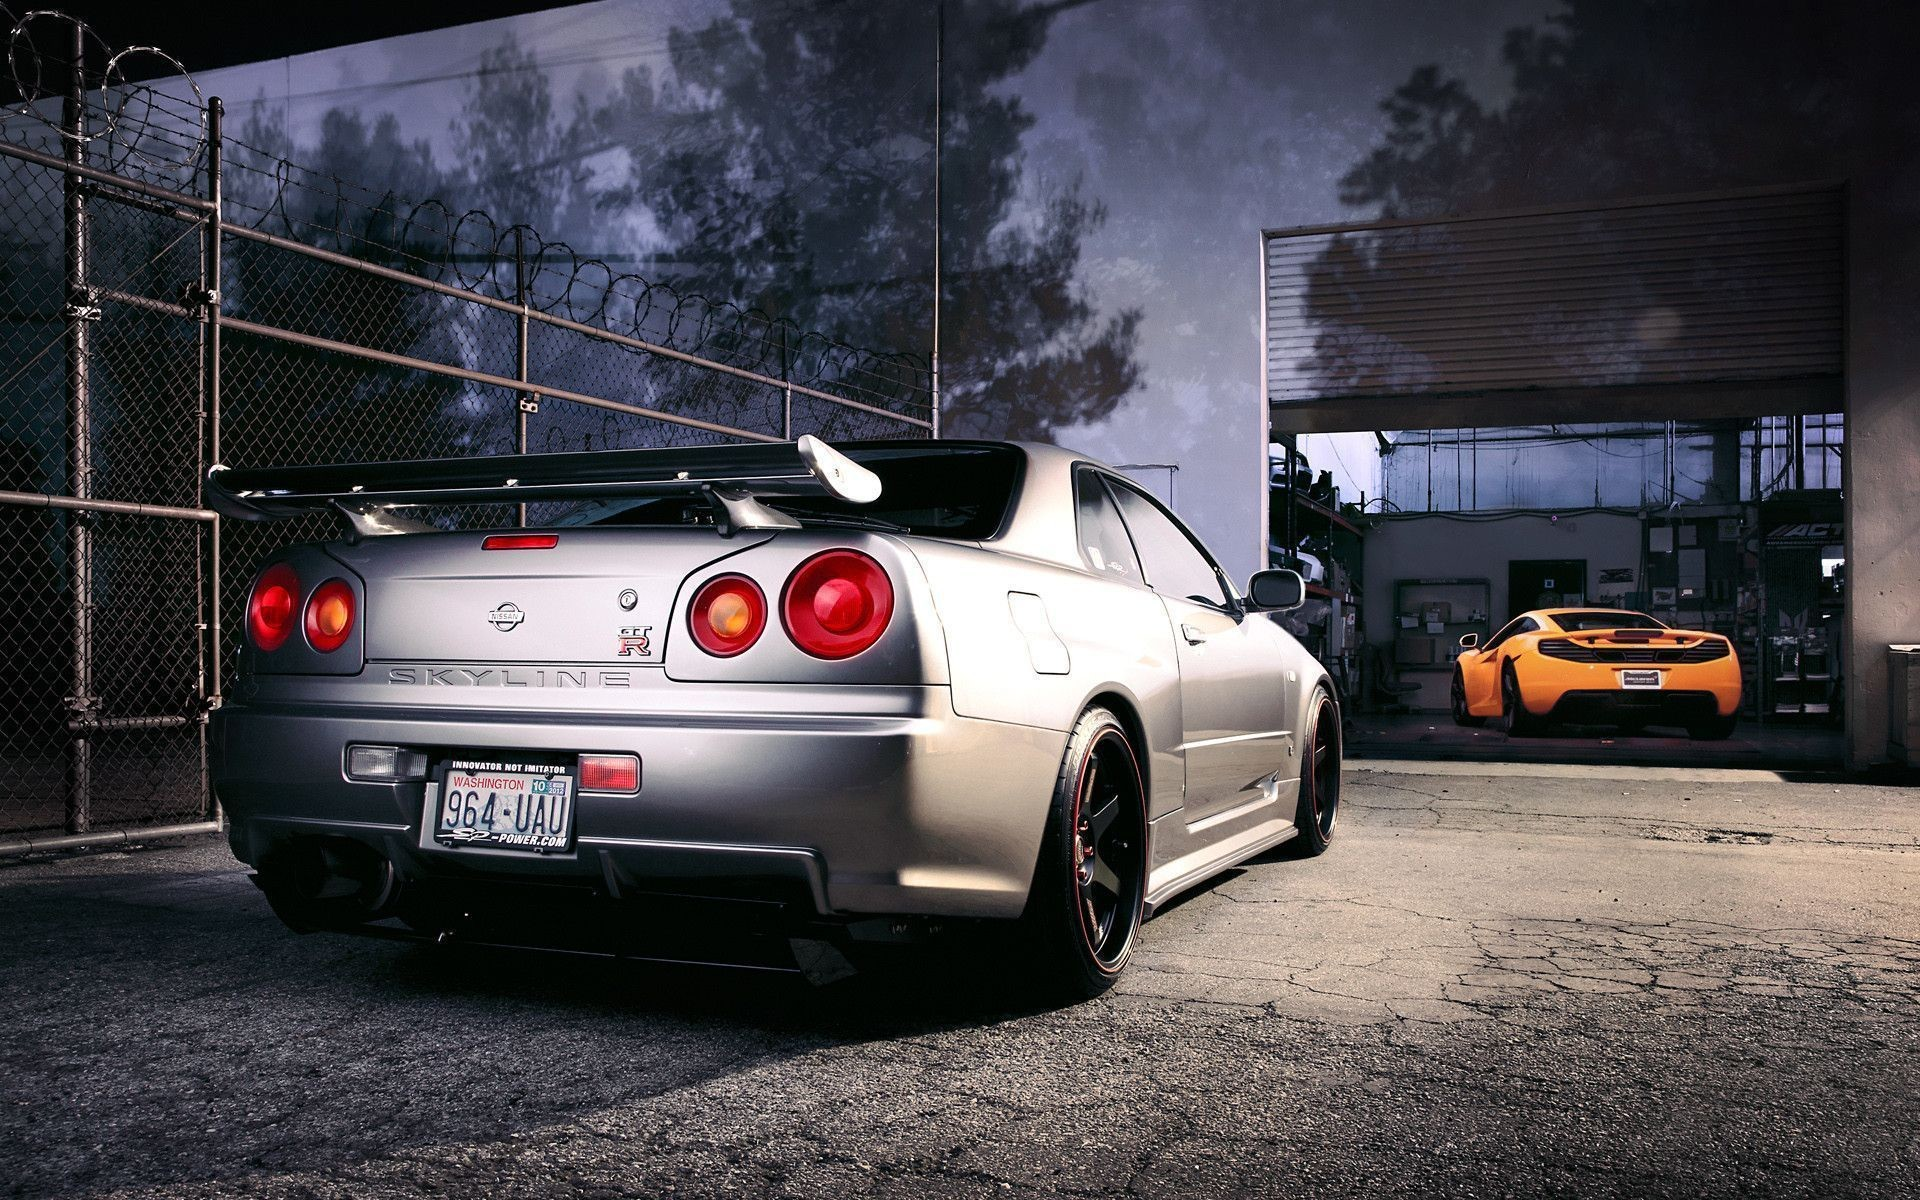 Res: 1920x1200, Nissan Skyline GTR R34 Wallpapers - Wallpaper Cave